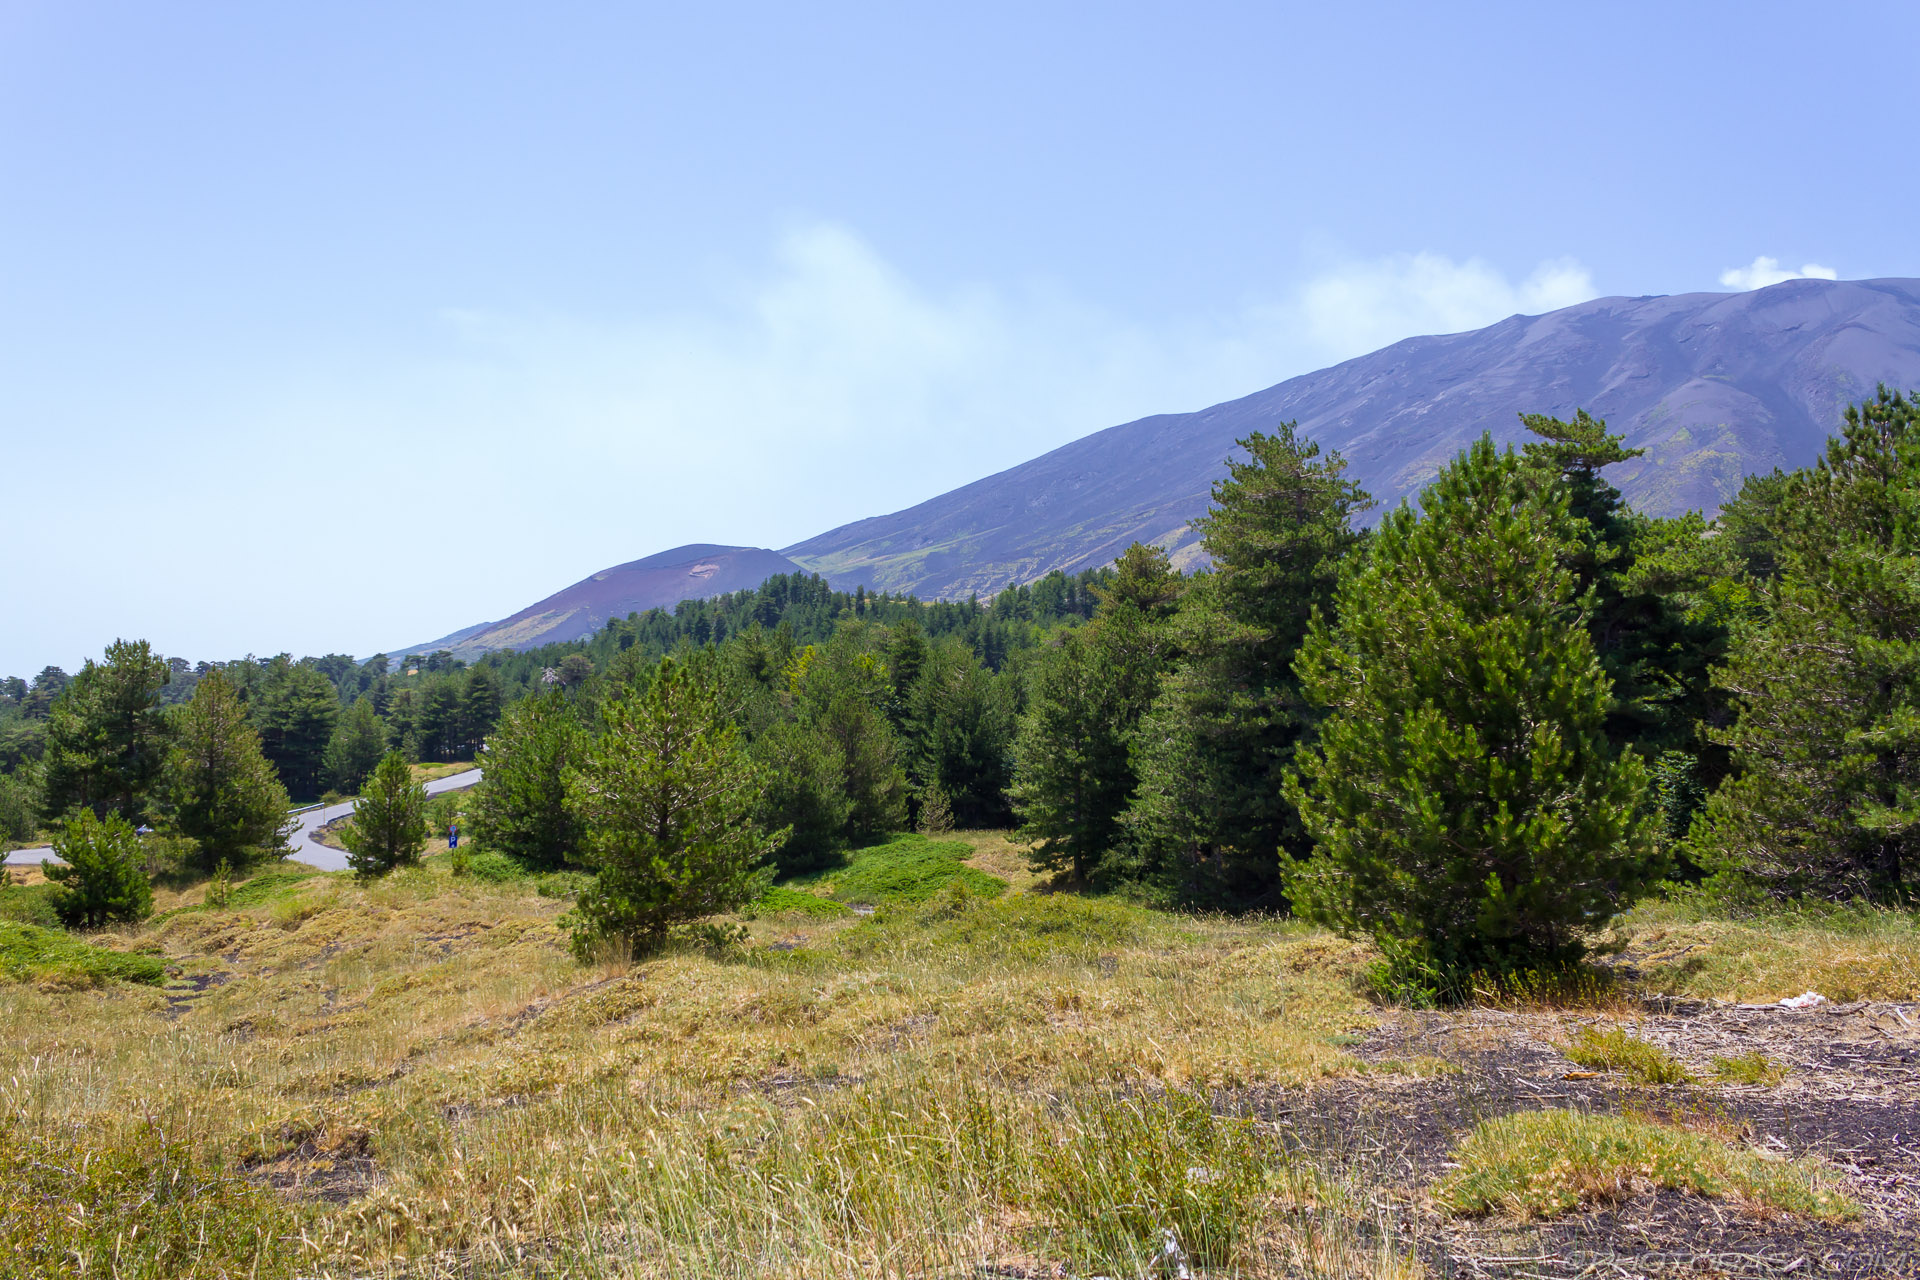 http://photorasa.com/mount-etna/etna-trees/